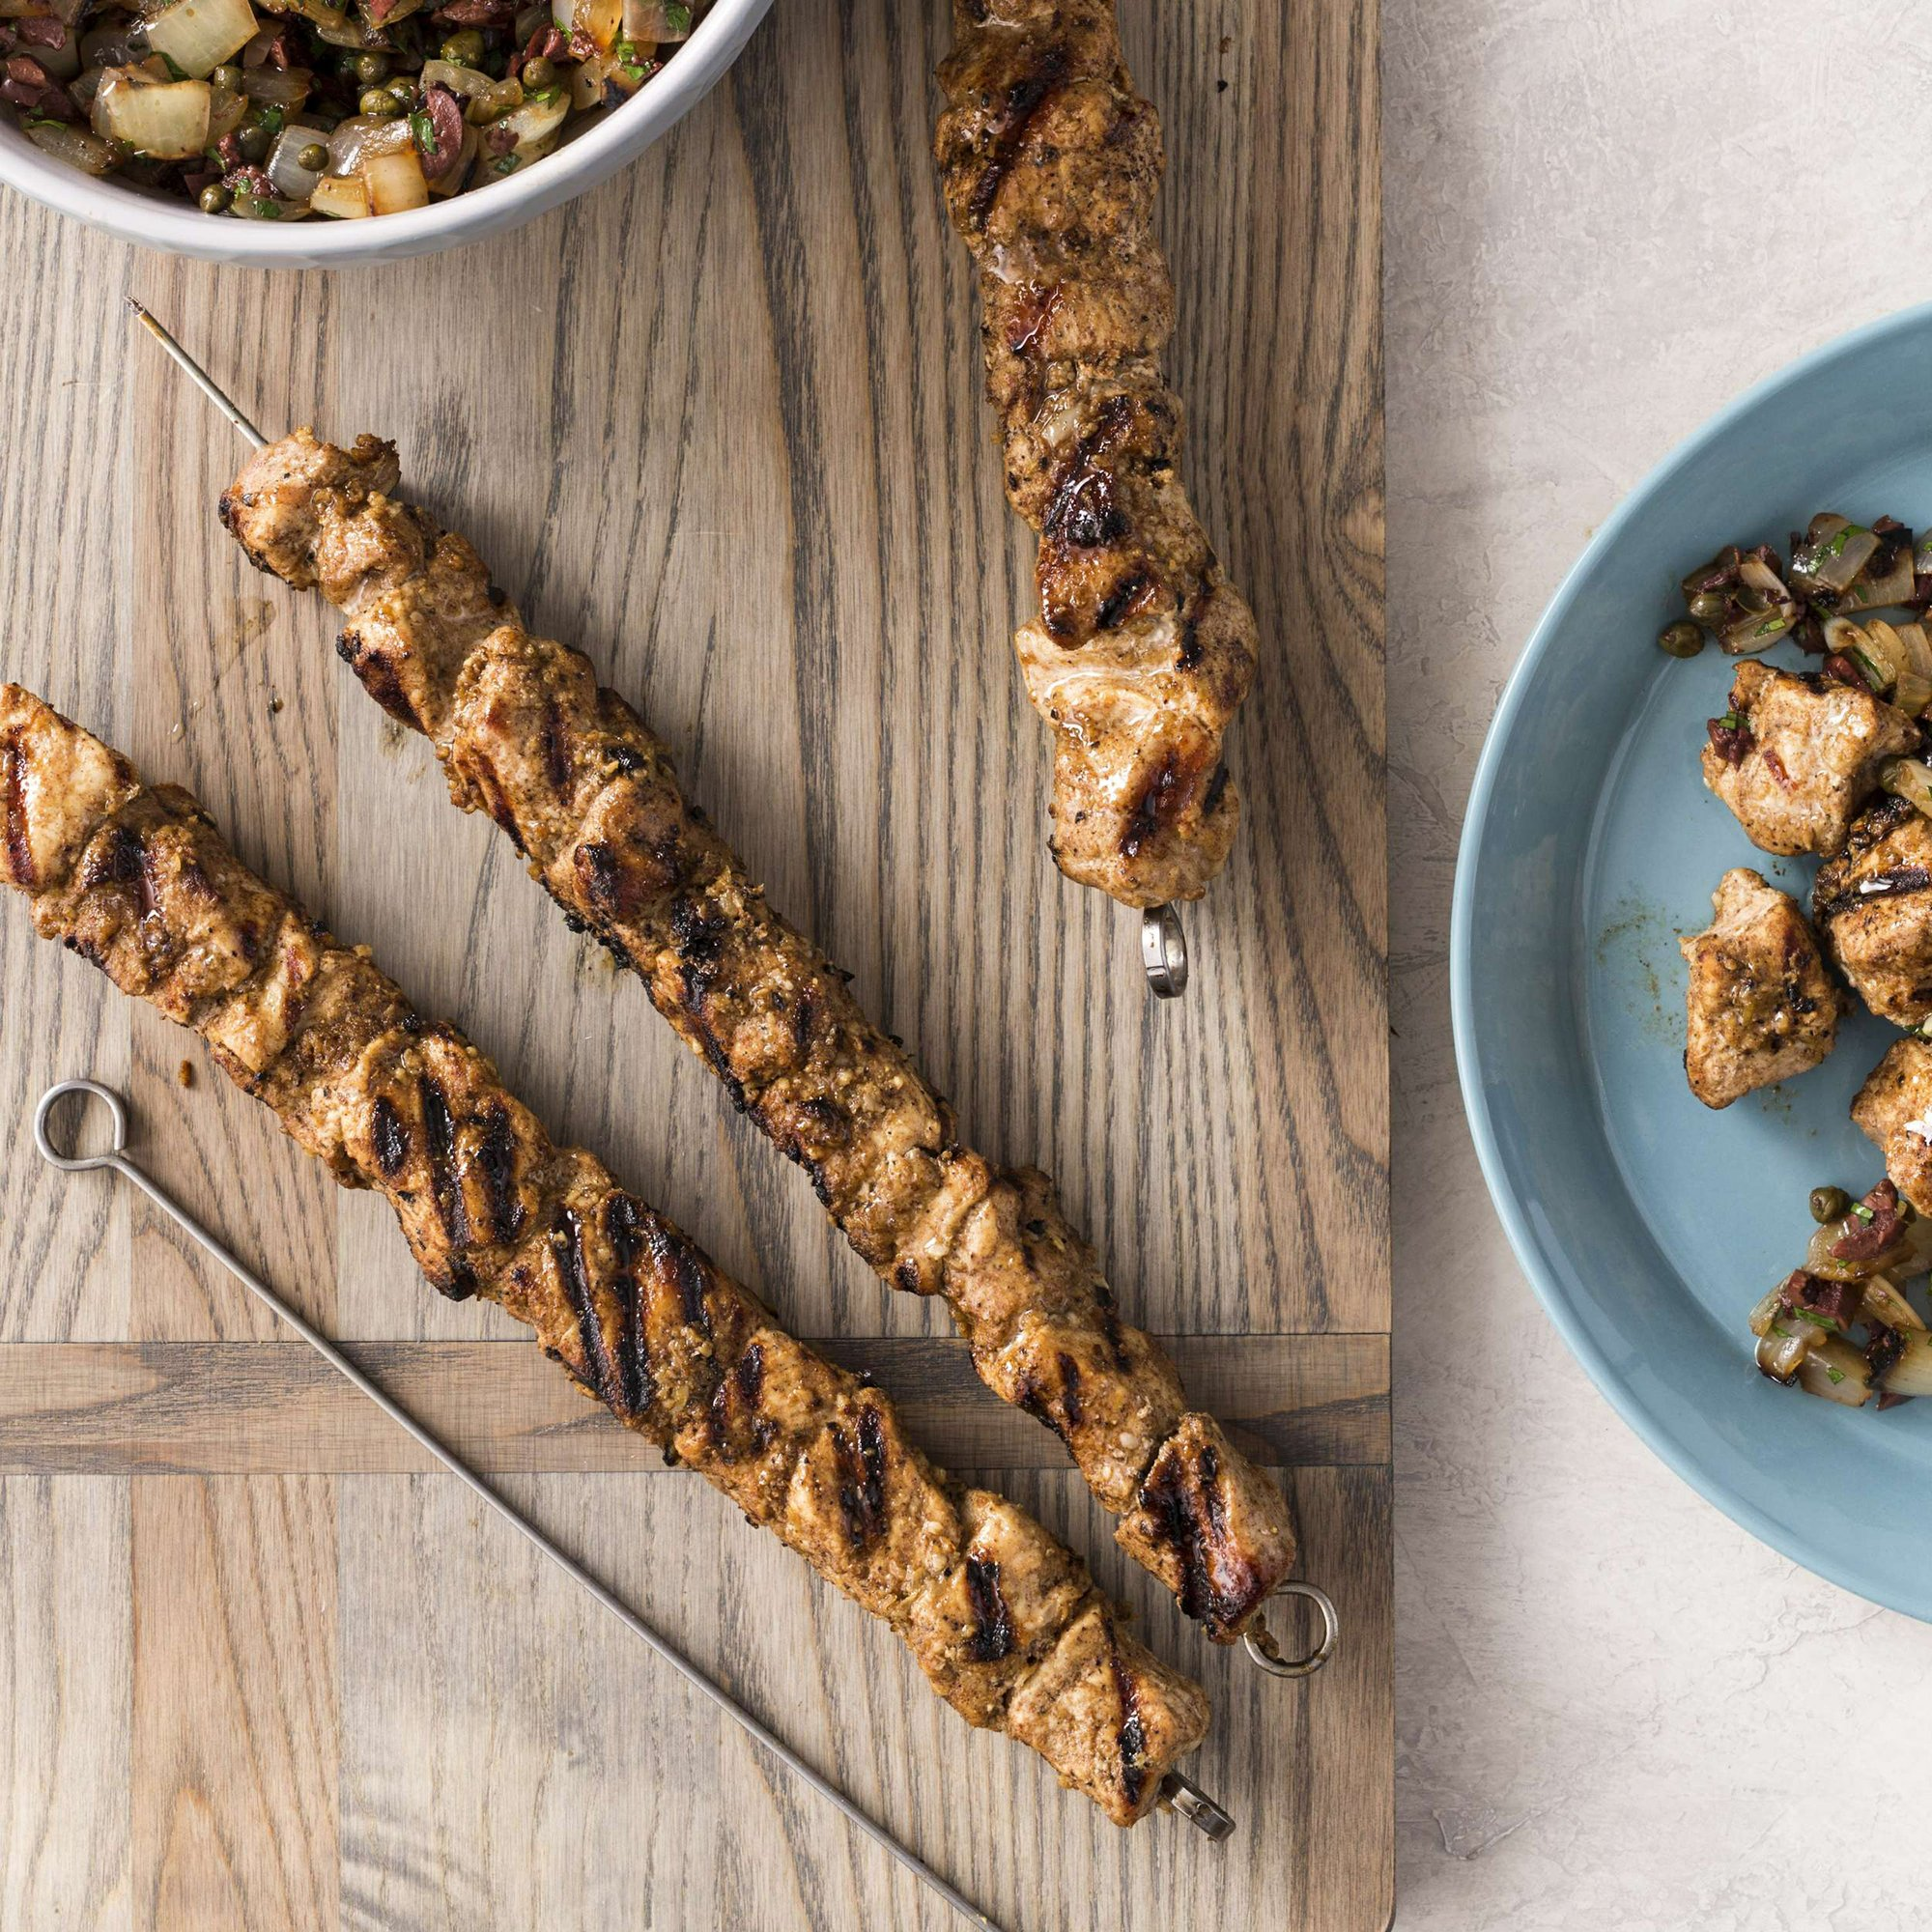 For moist grilled pork skewers, turn to country-style ribs